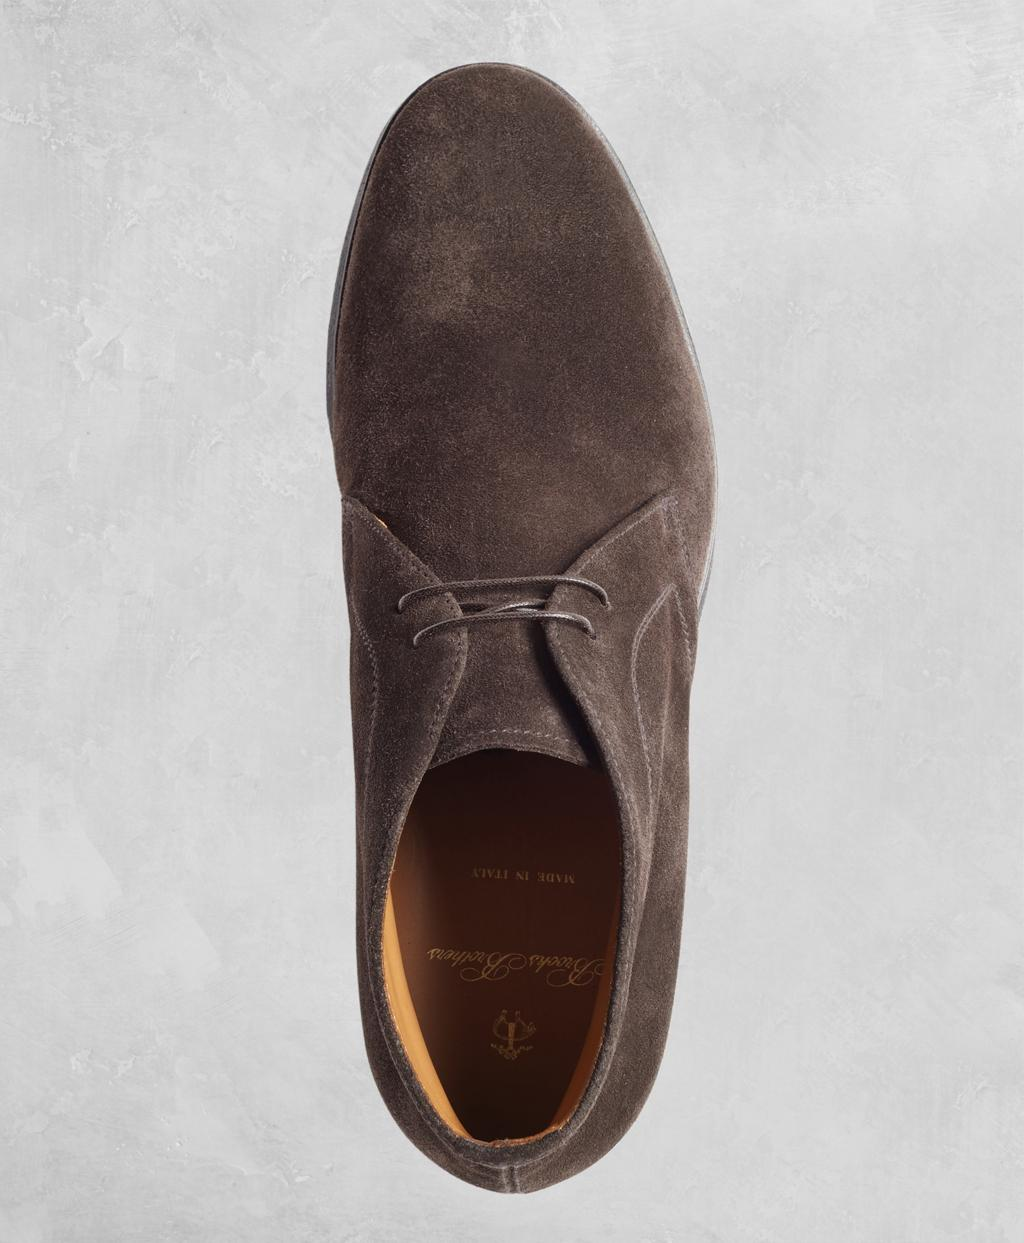 af52113fb37 Brooks Brothers - Brown Golden Fleece Suede Chukka Boots for Men - Lyst.  View fullscreen